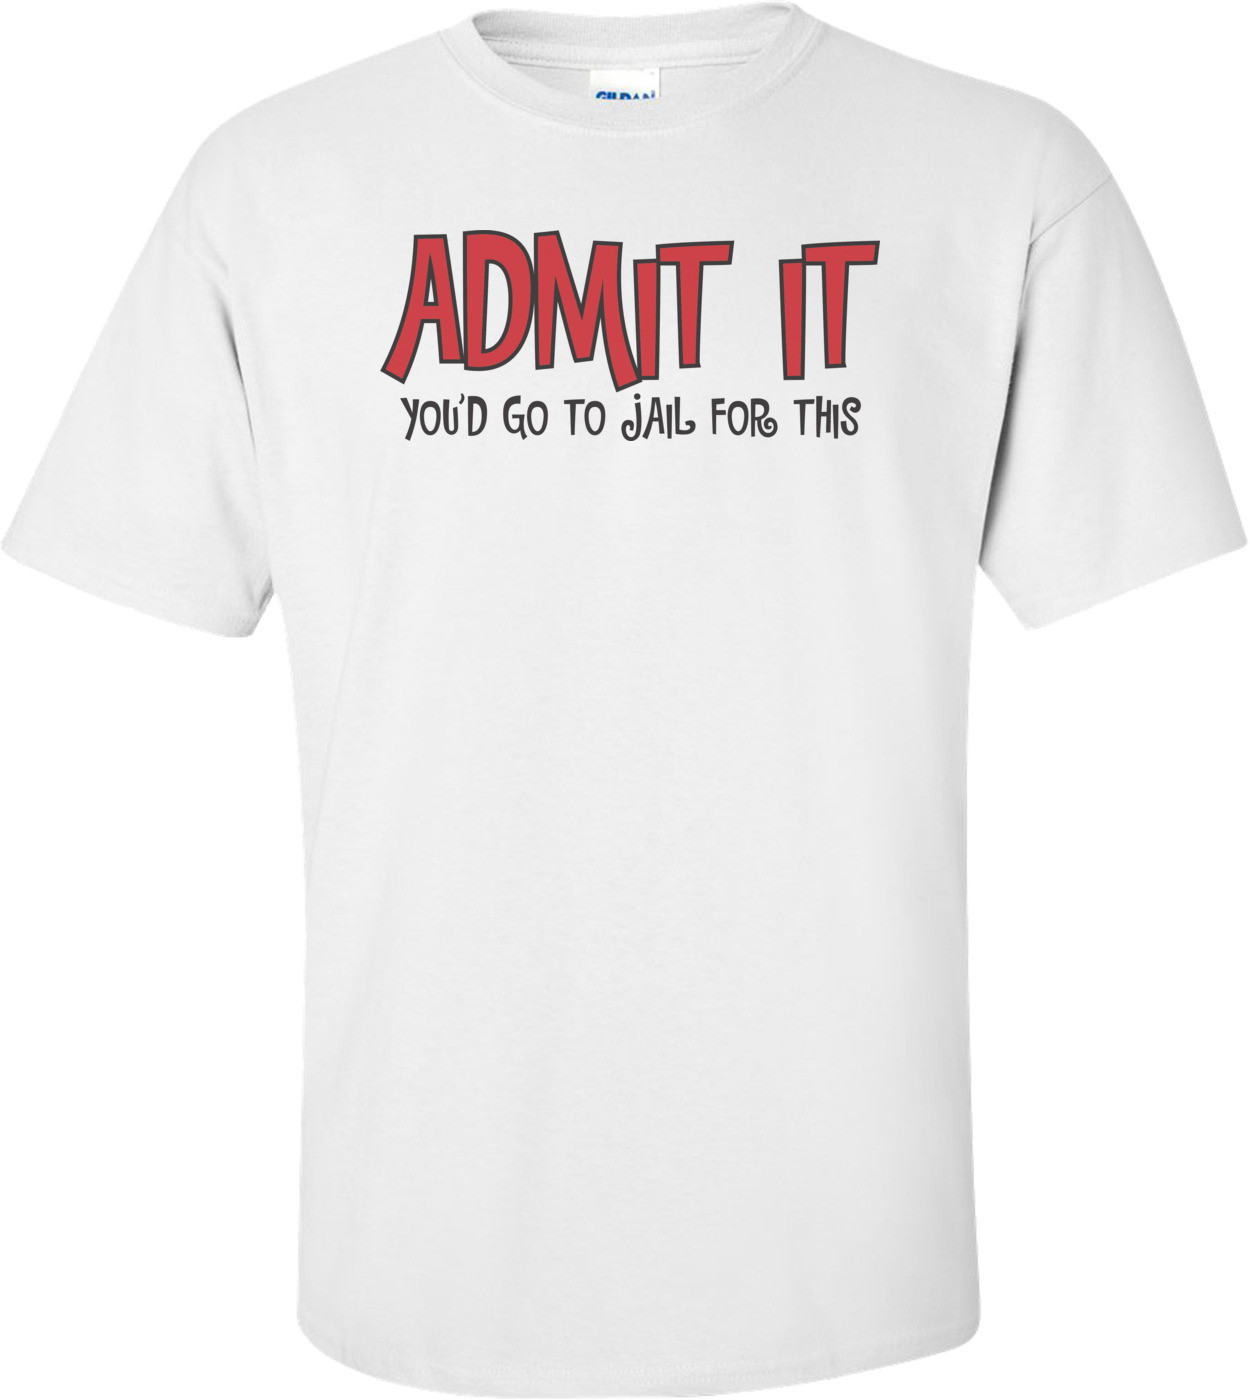 Admit It You'd Go To Jail For This T-shirt